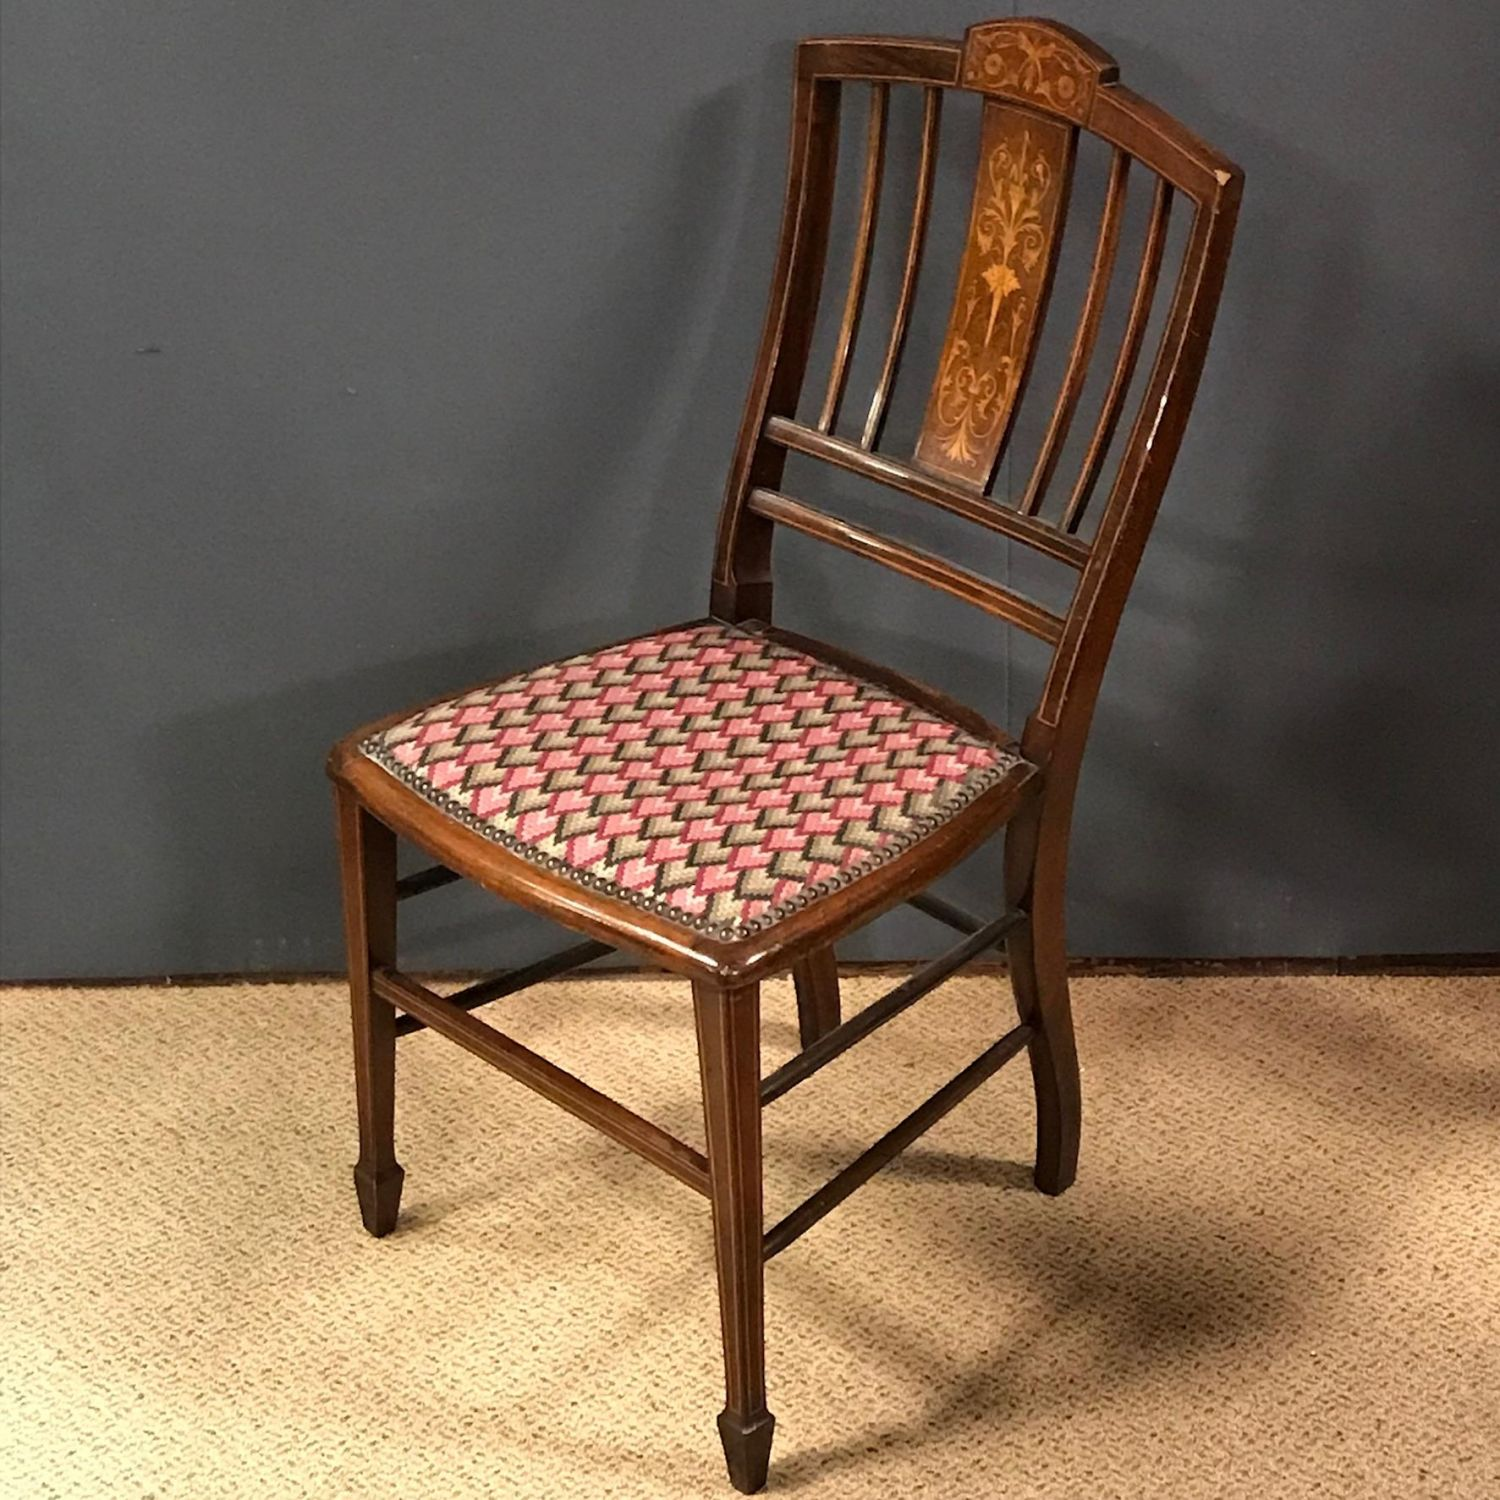 ... Antique Chairs; Edwardian Inlaid Mahogany Bedroom Chair.  4FE9A693-EACD-4C37-ACD1-E7AC3DD70C57.jpeg ... - Edwardian Inlaid Mahogany Bedroom Chair - Antique Chairs - Hemswell